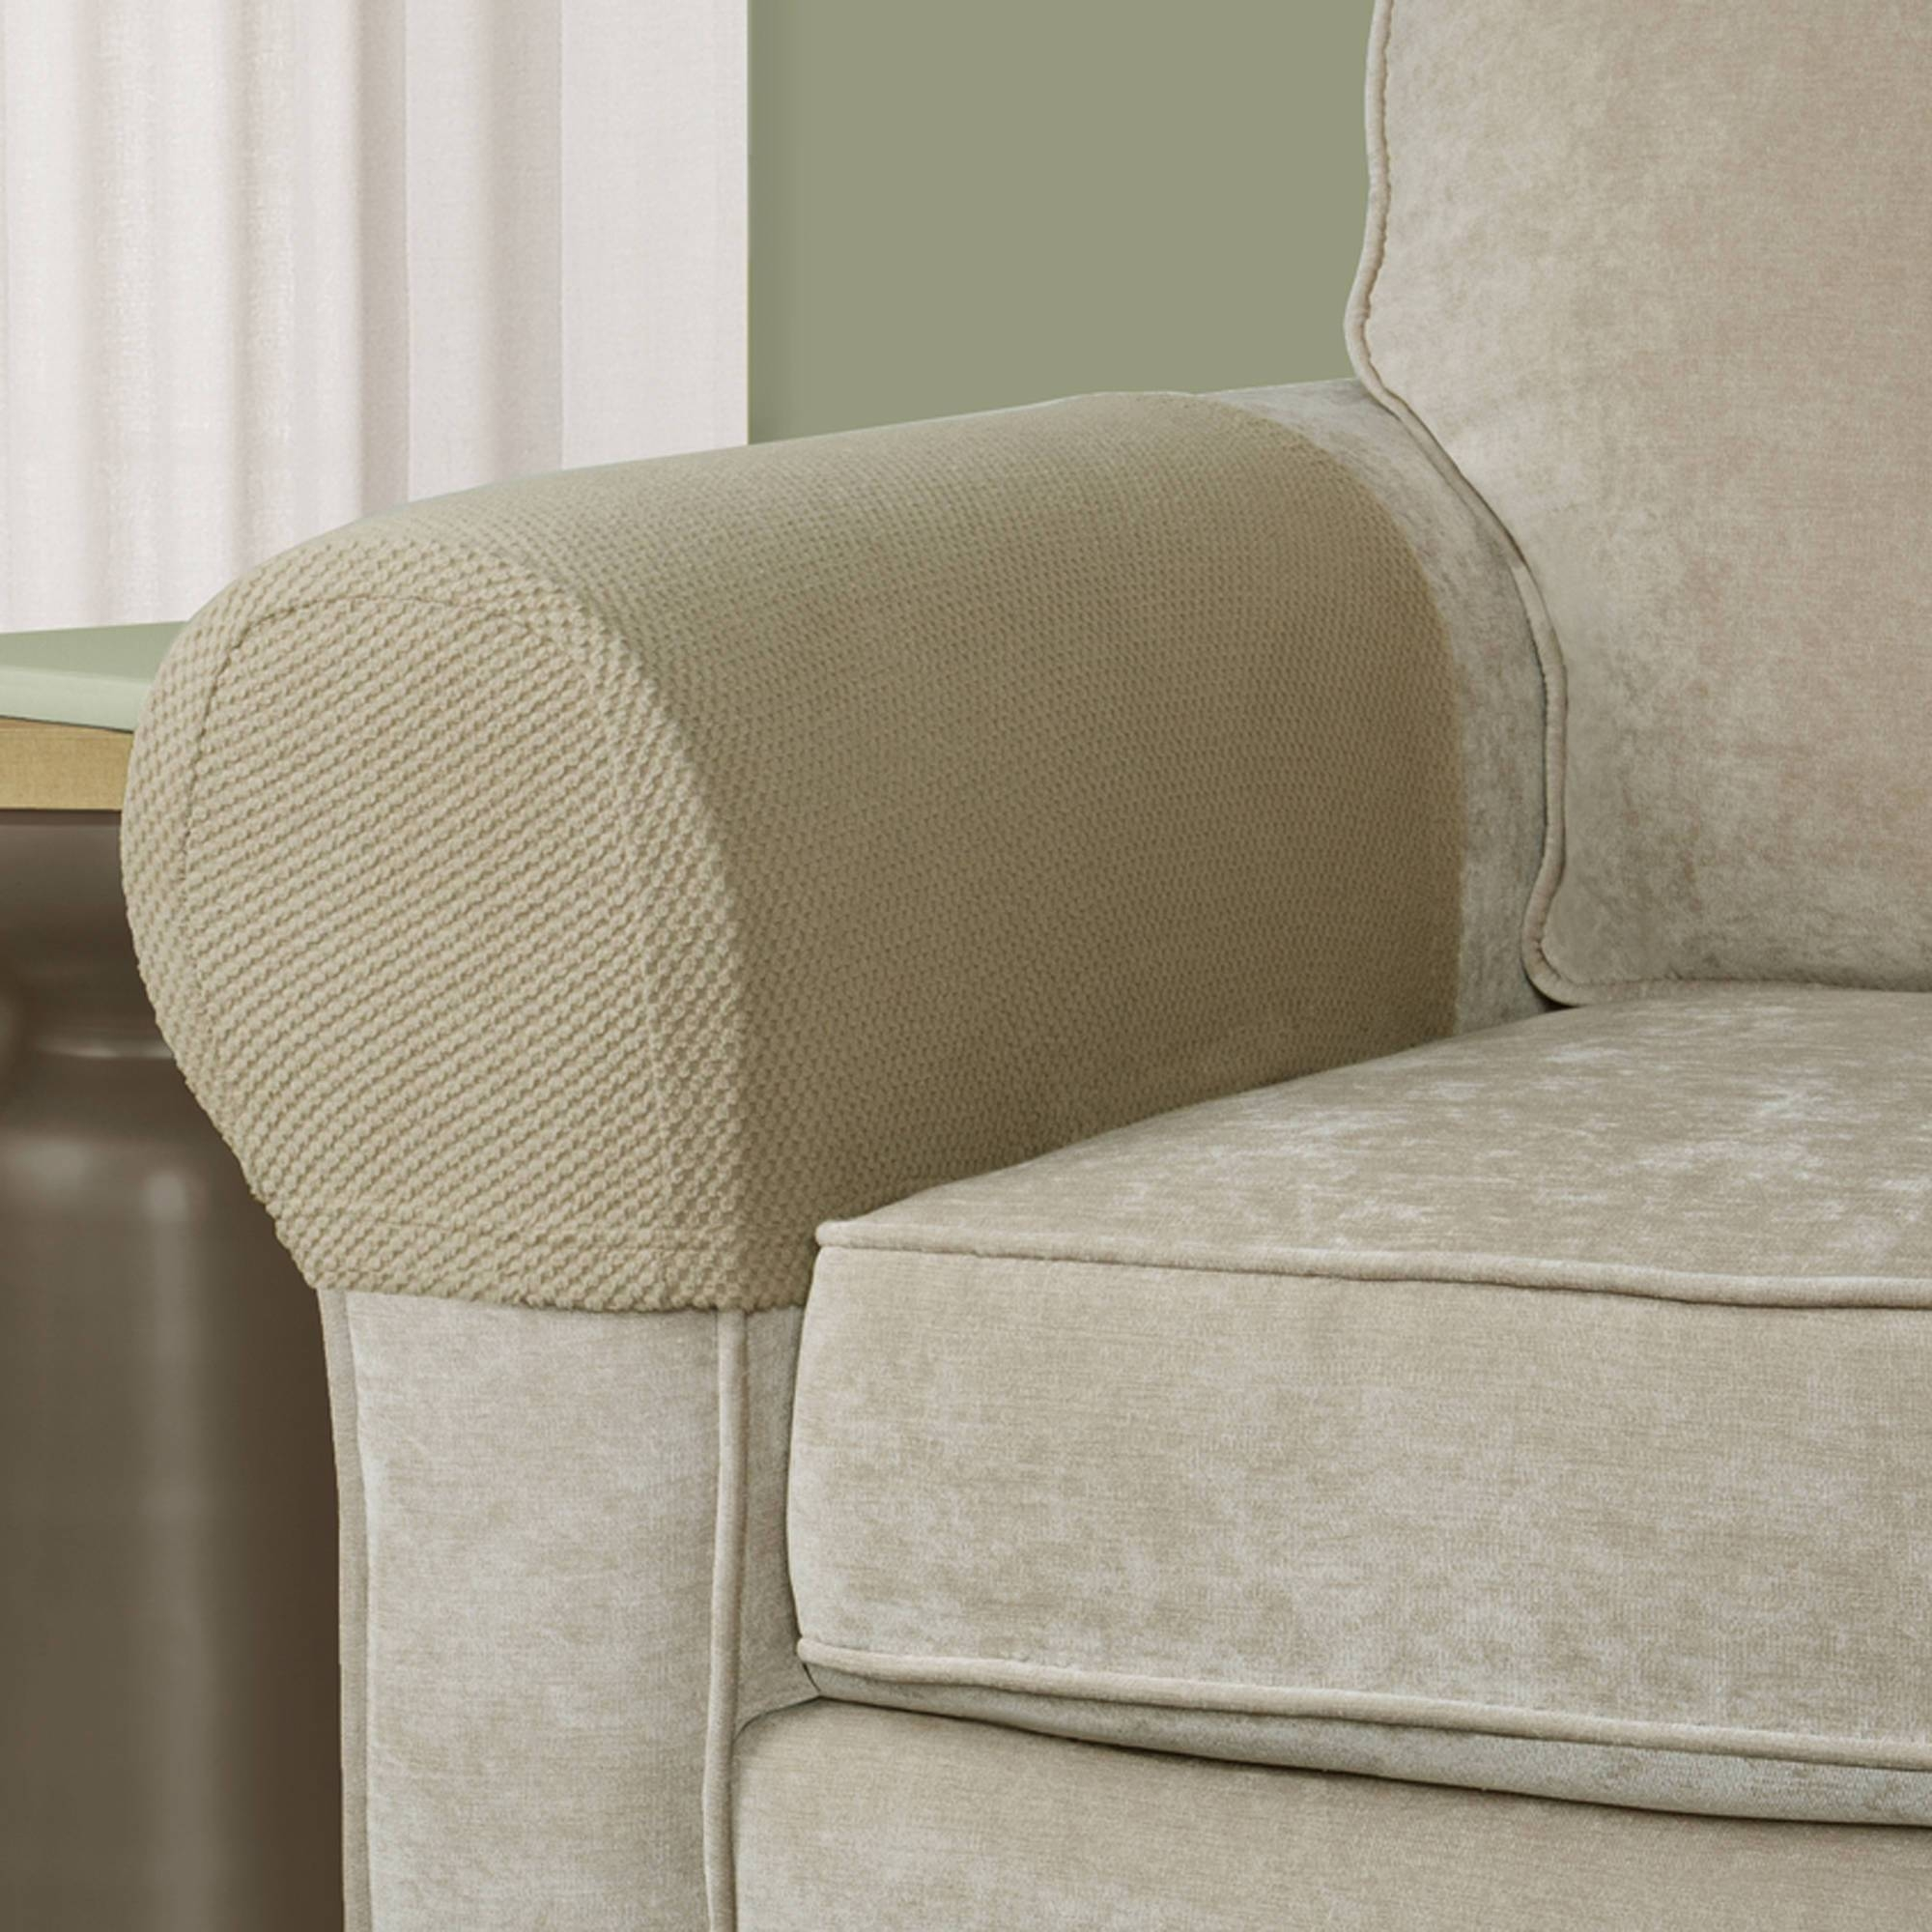 2 Piece White Armrest Covers Stretchy Set Chair Sofa Arm Throughout Sofa And Chair Covers (Photo 16 of 30)